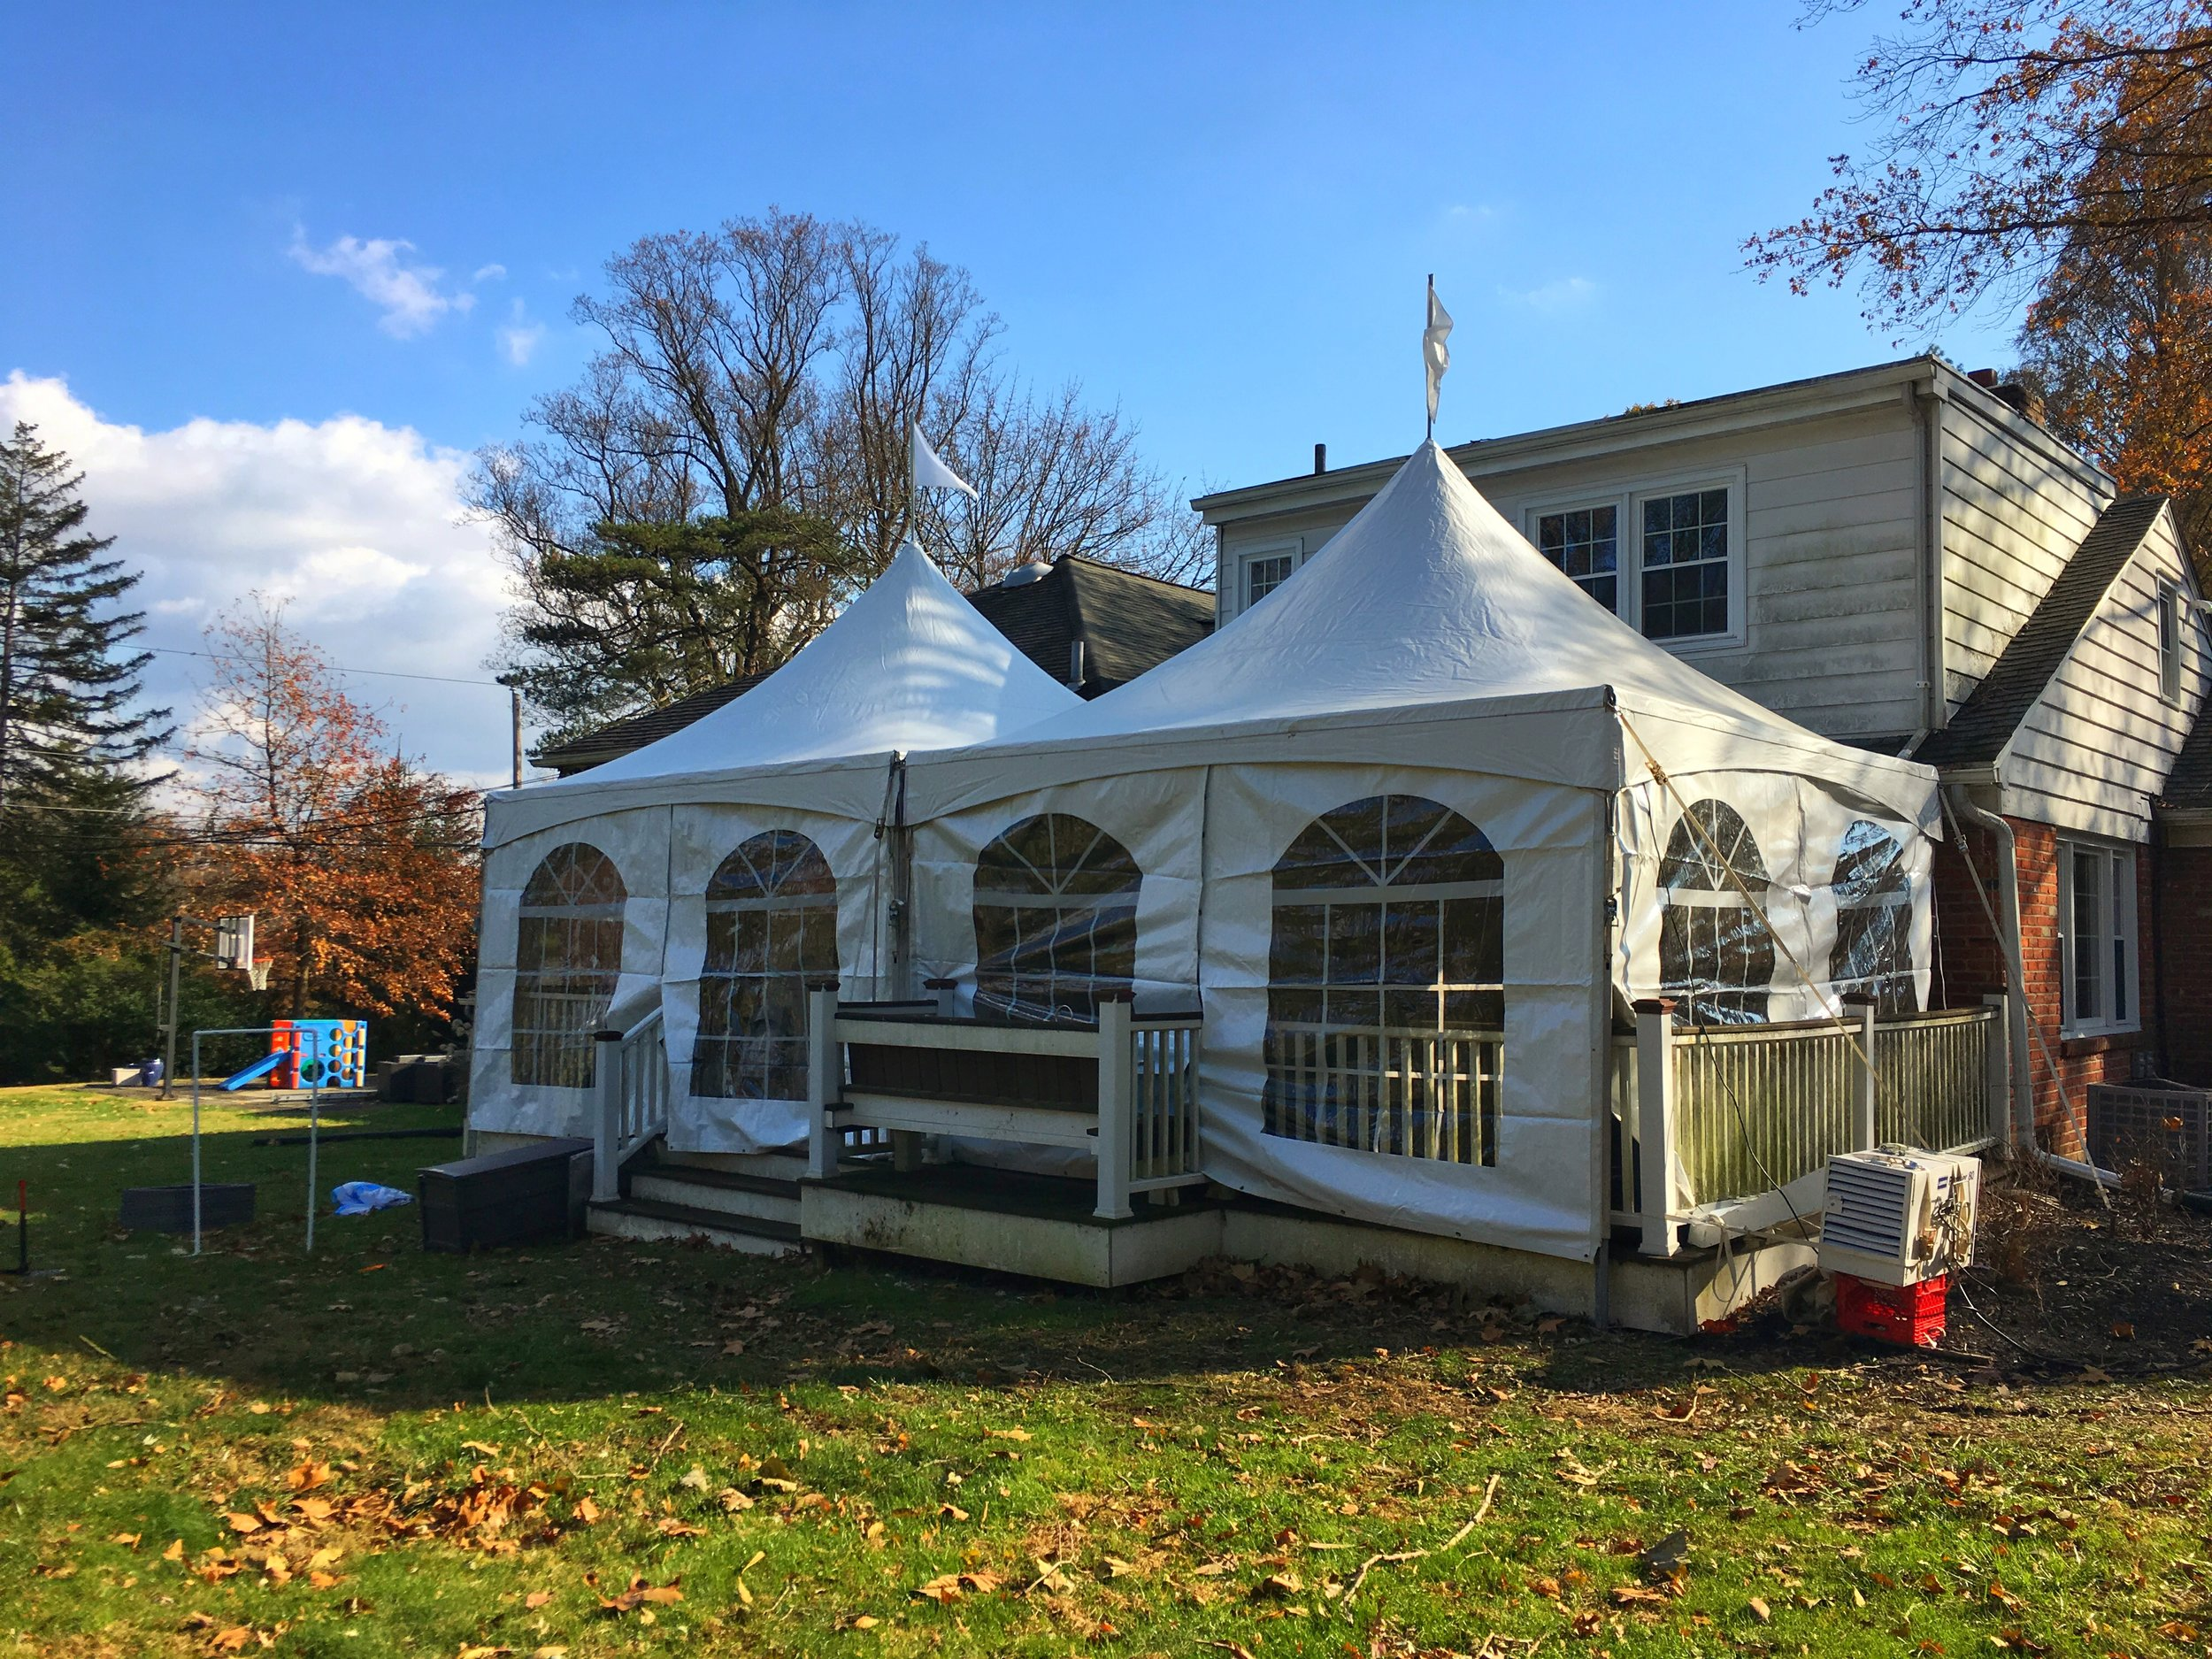 Nice backyard frame tent for rent in Cherry Hill, NJ